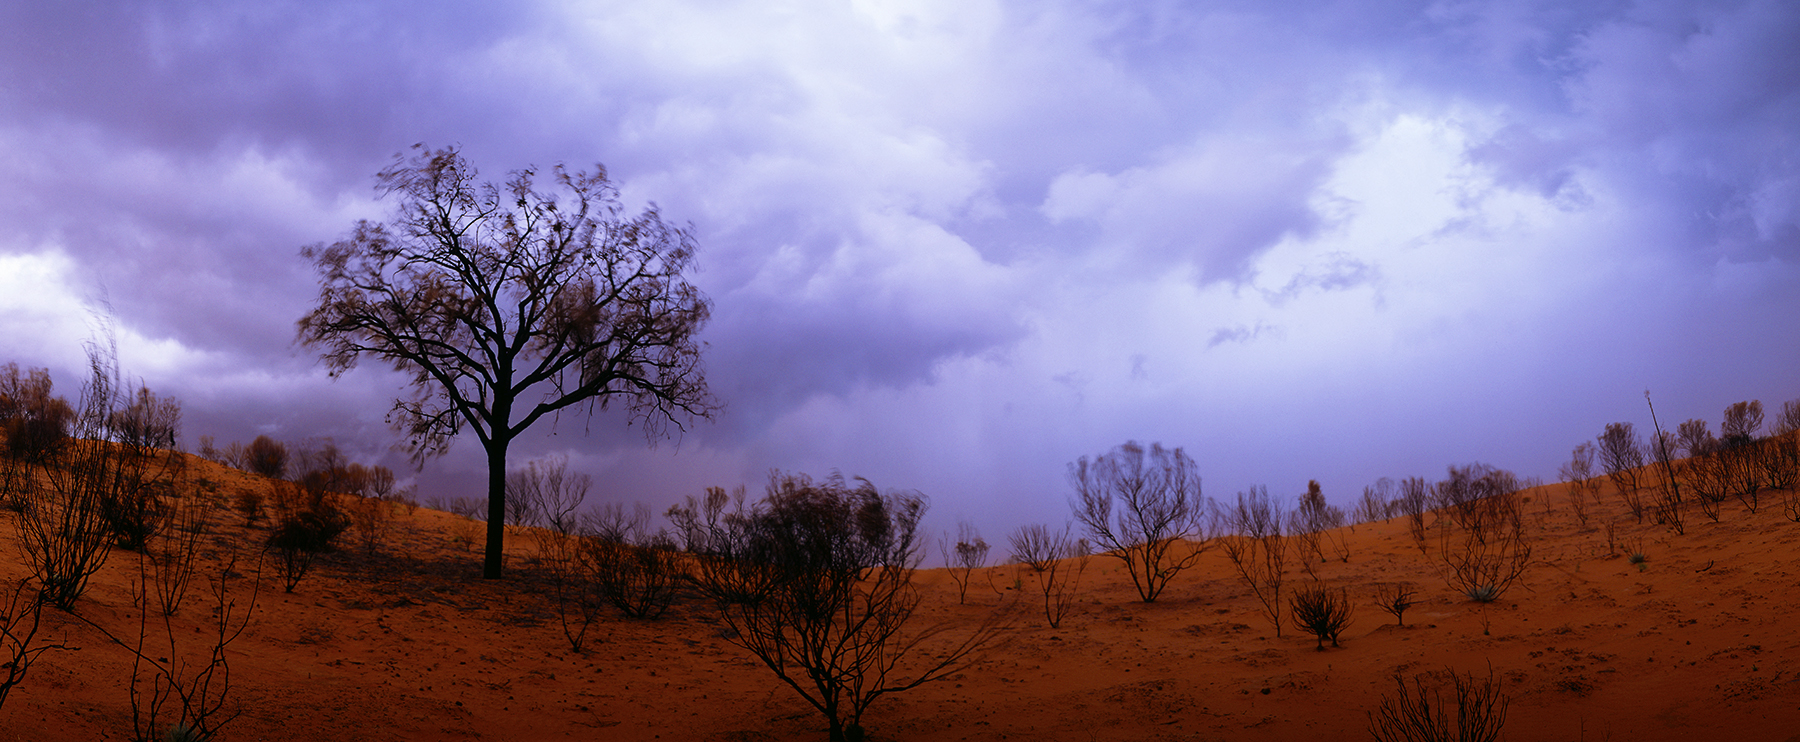 Desert Oak, Northern Territory, Australia. A Limited Edition Fine Art Landscape Photograph by Richard Hume